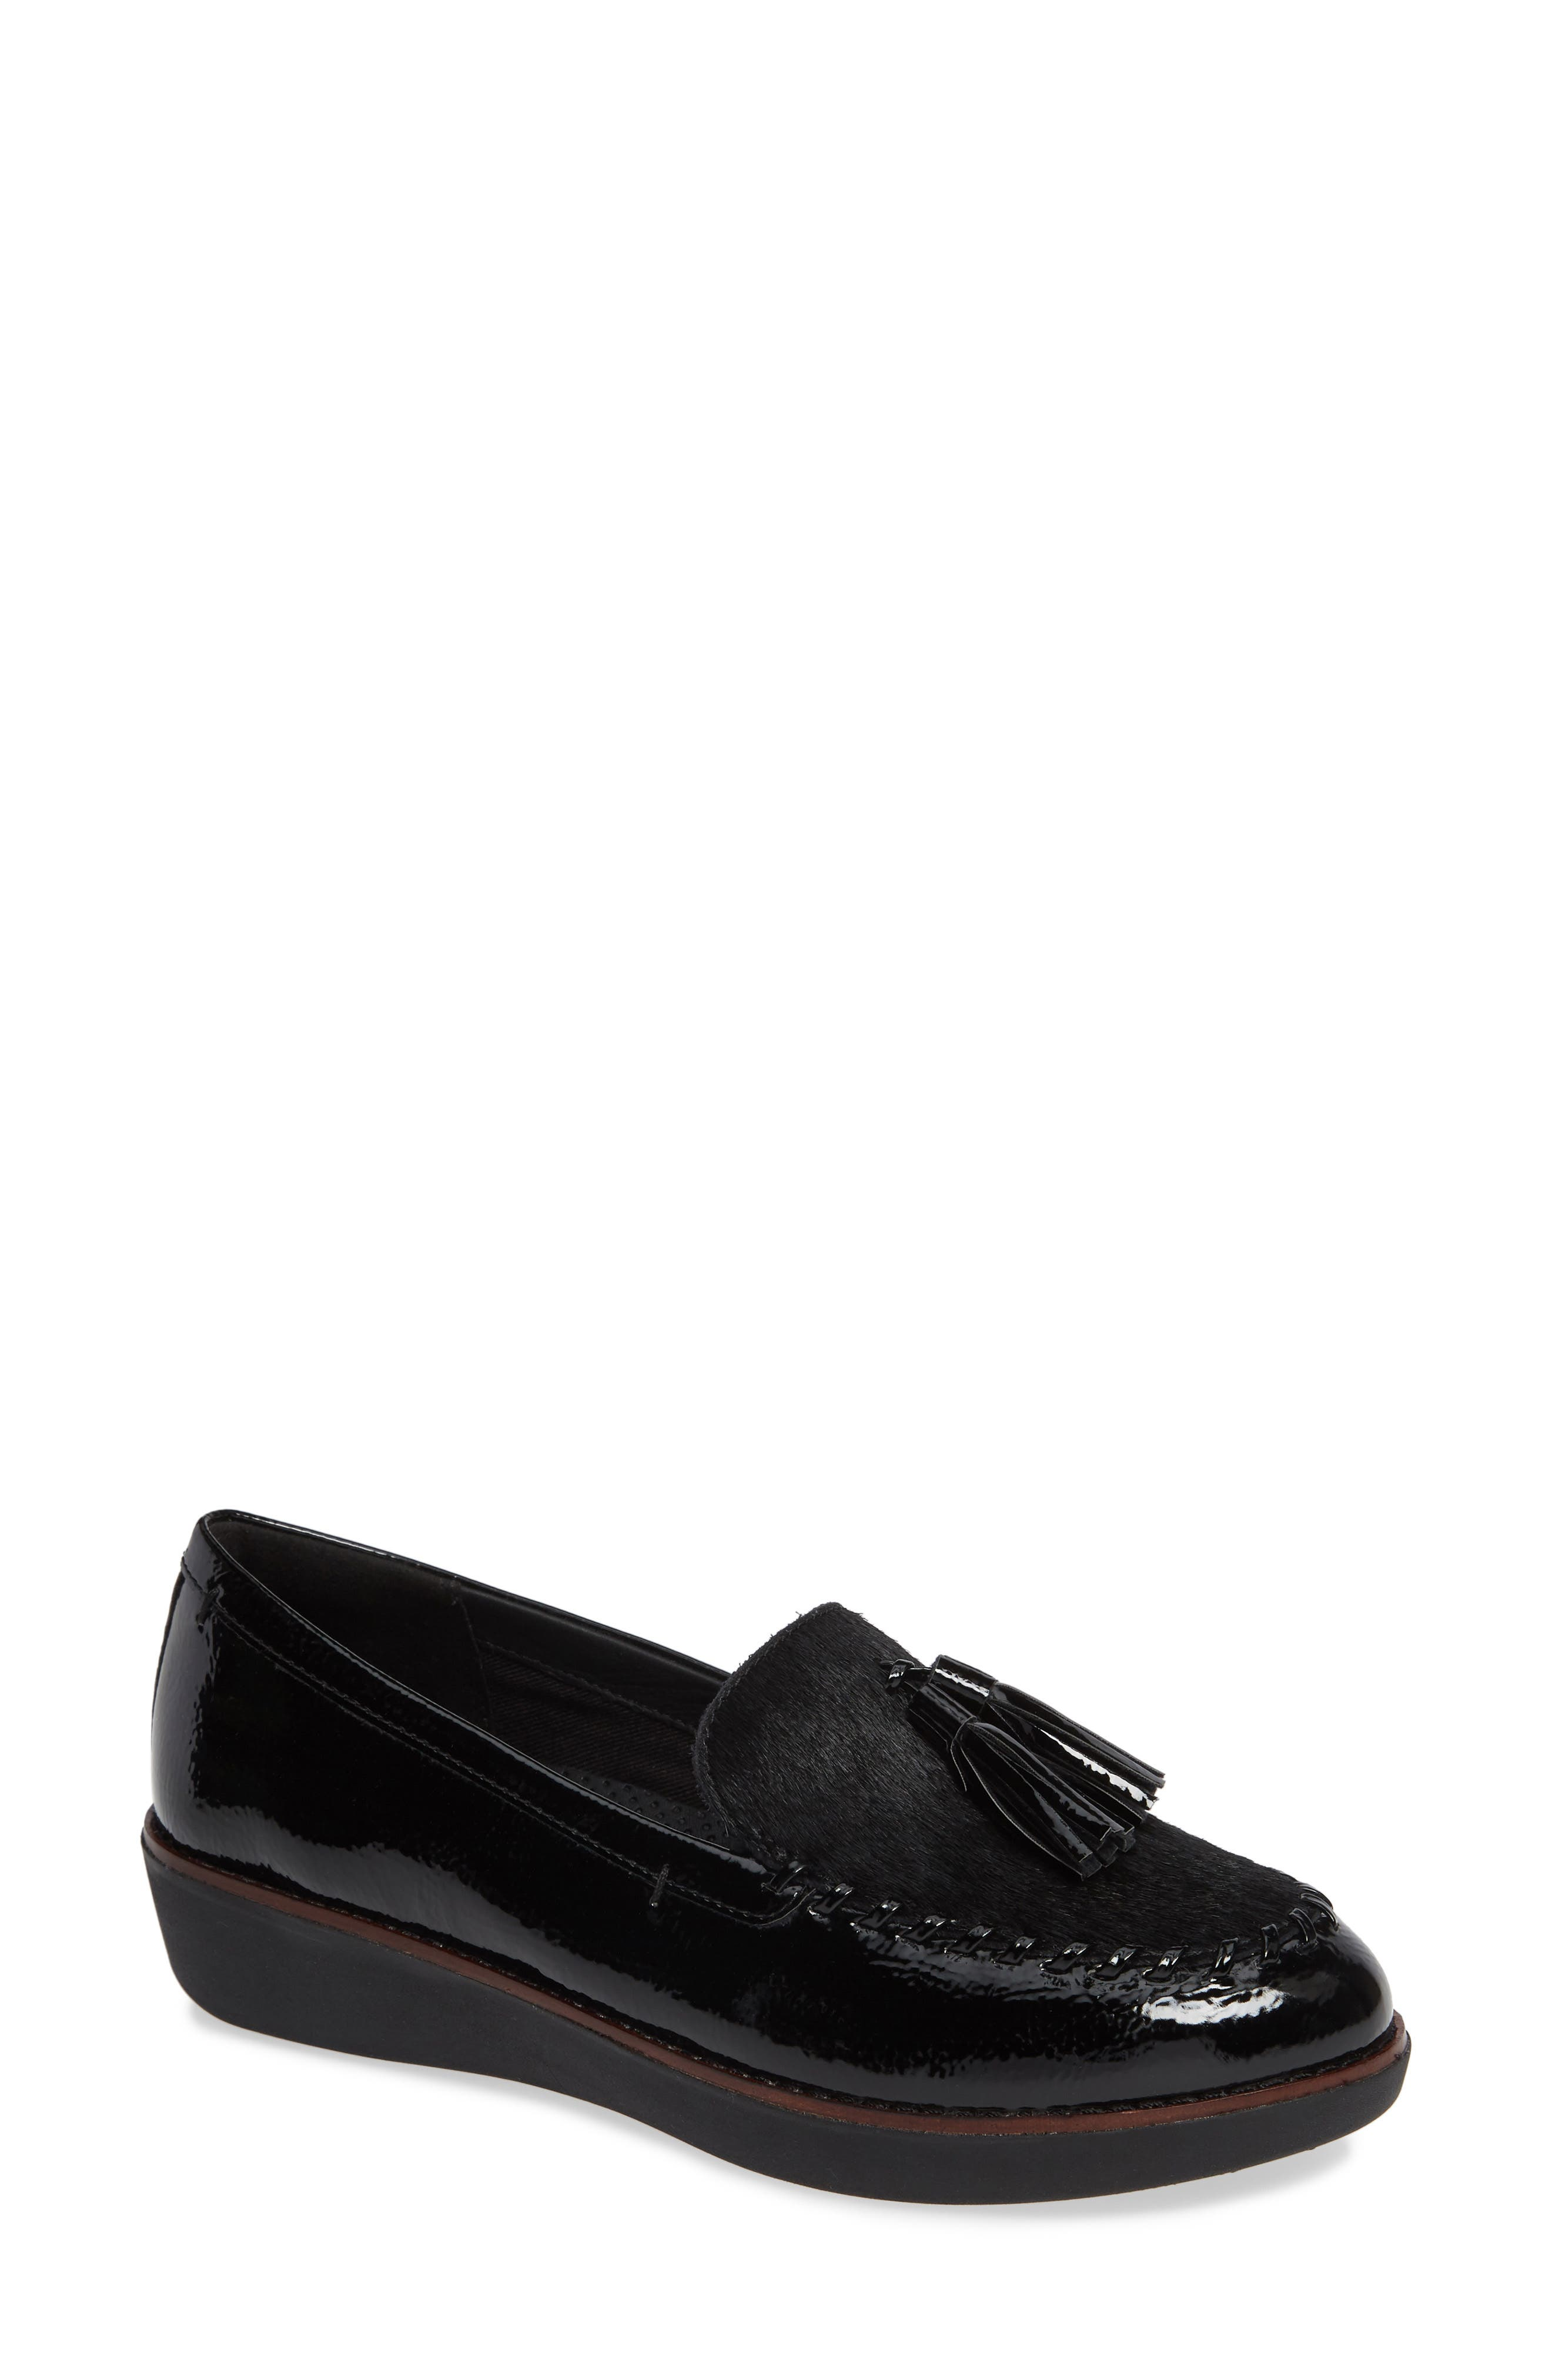 Petrina Genuine Calf Hair Loafer,                         Main,                         color, BLACK FAUX LEATHER